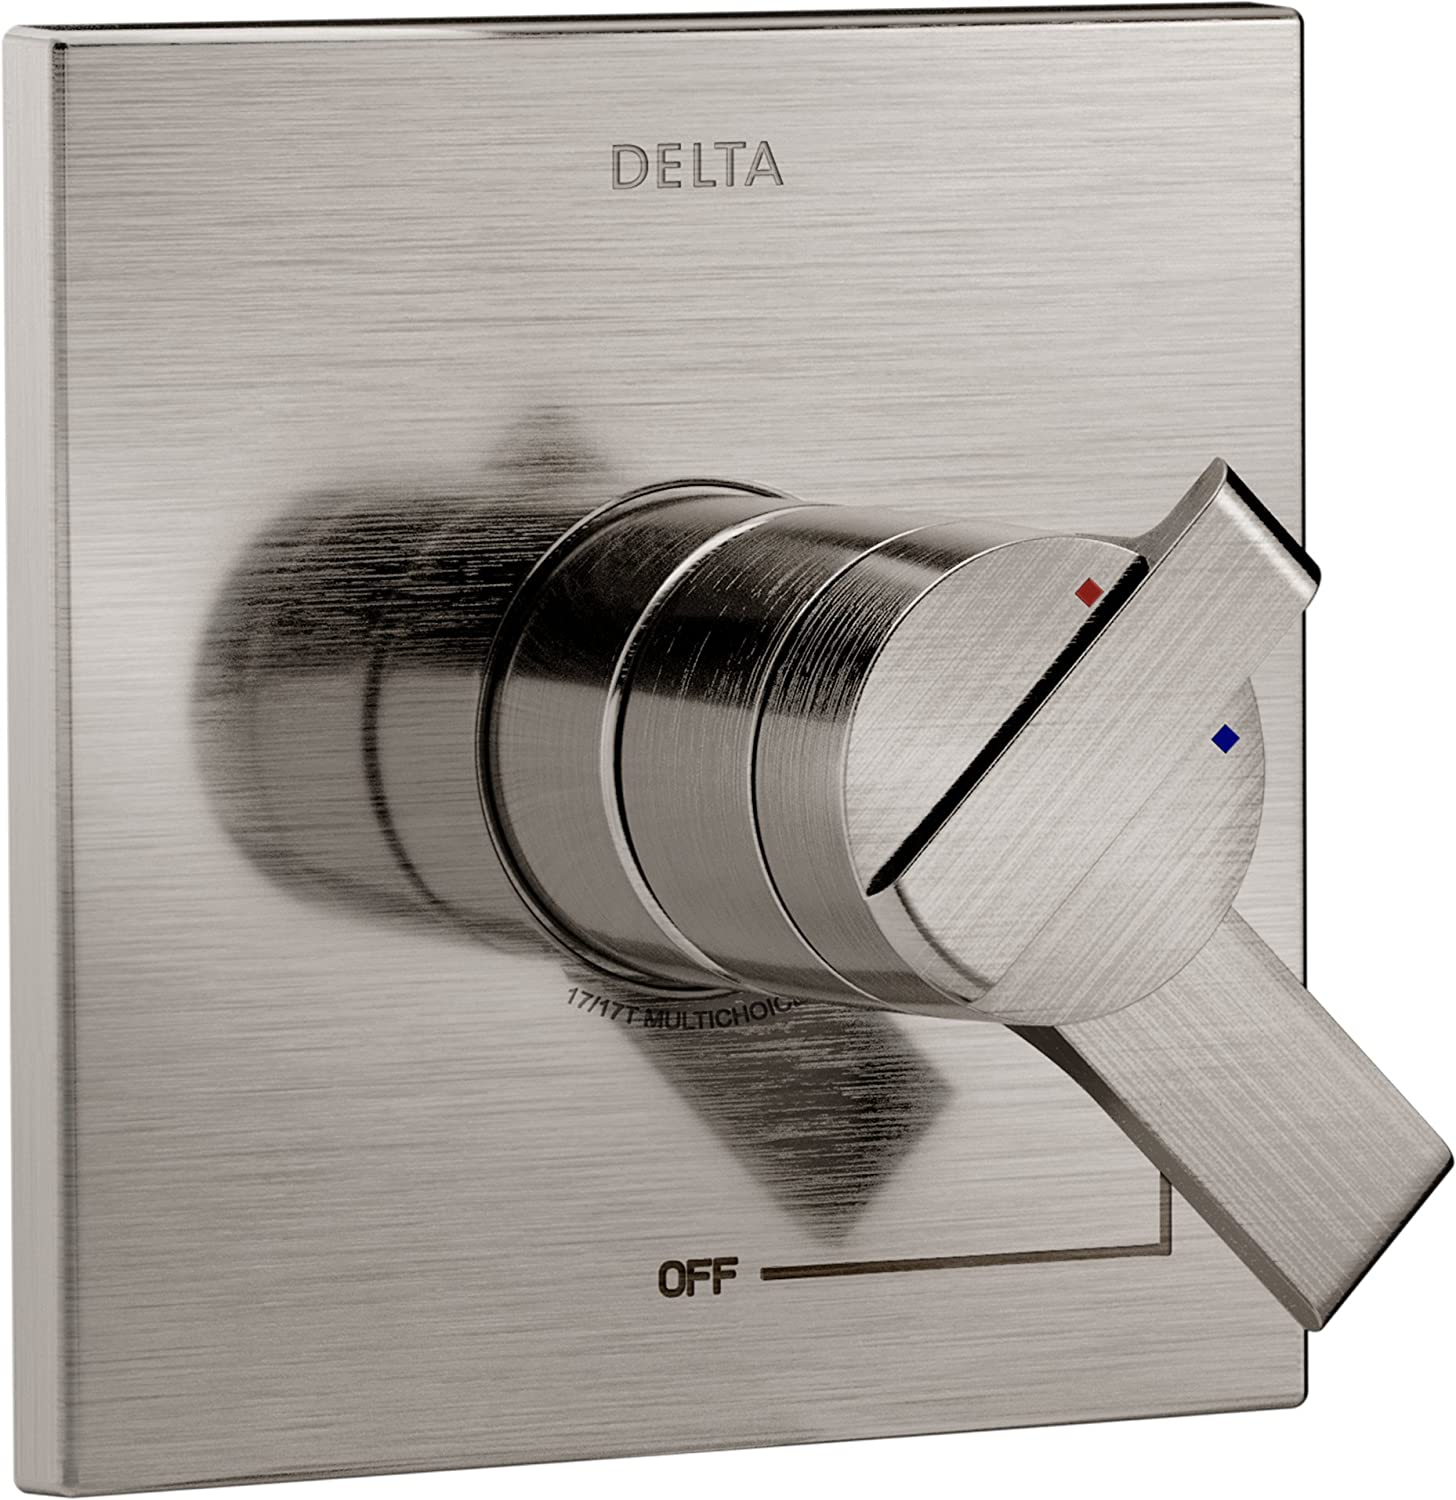 Delta Faucet Ara 17 Series Dual-Function Shower Handle Valve Trim Kit, Stainless T17067-SS (Valve Not Included)